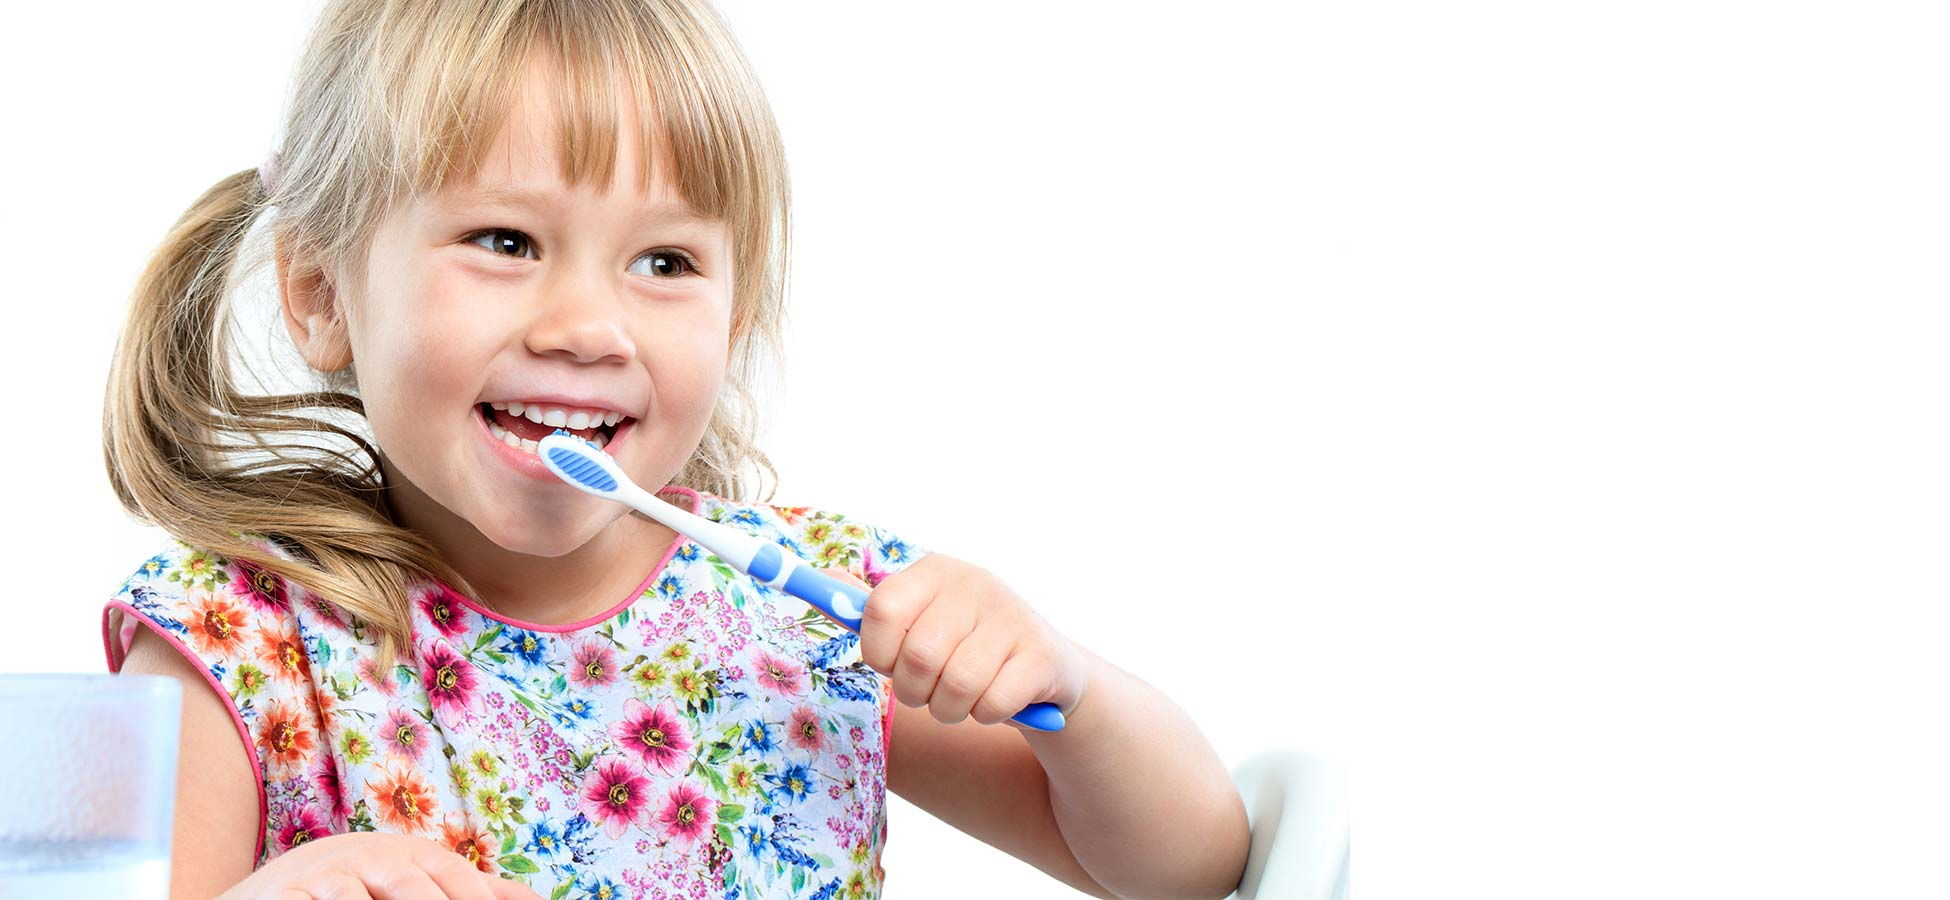 smiling young girl with pigtails brushes her teeth in a flower print dress